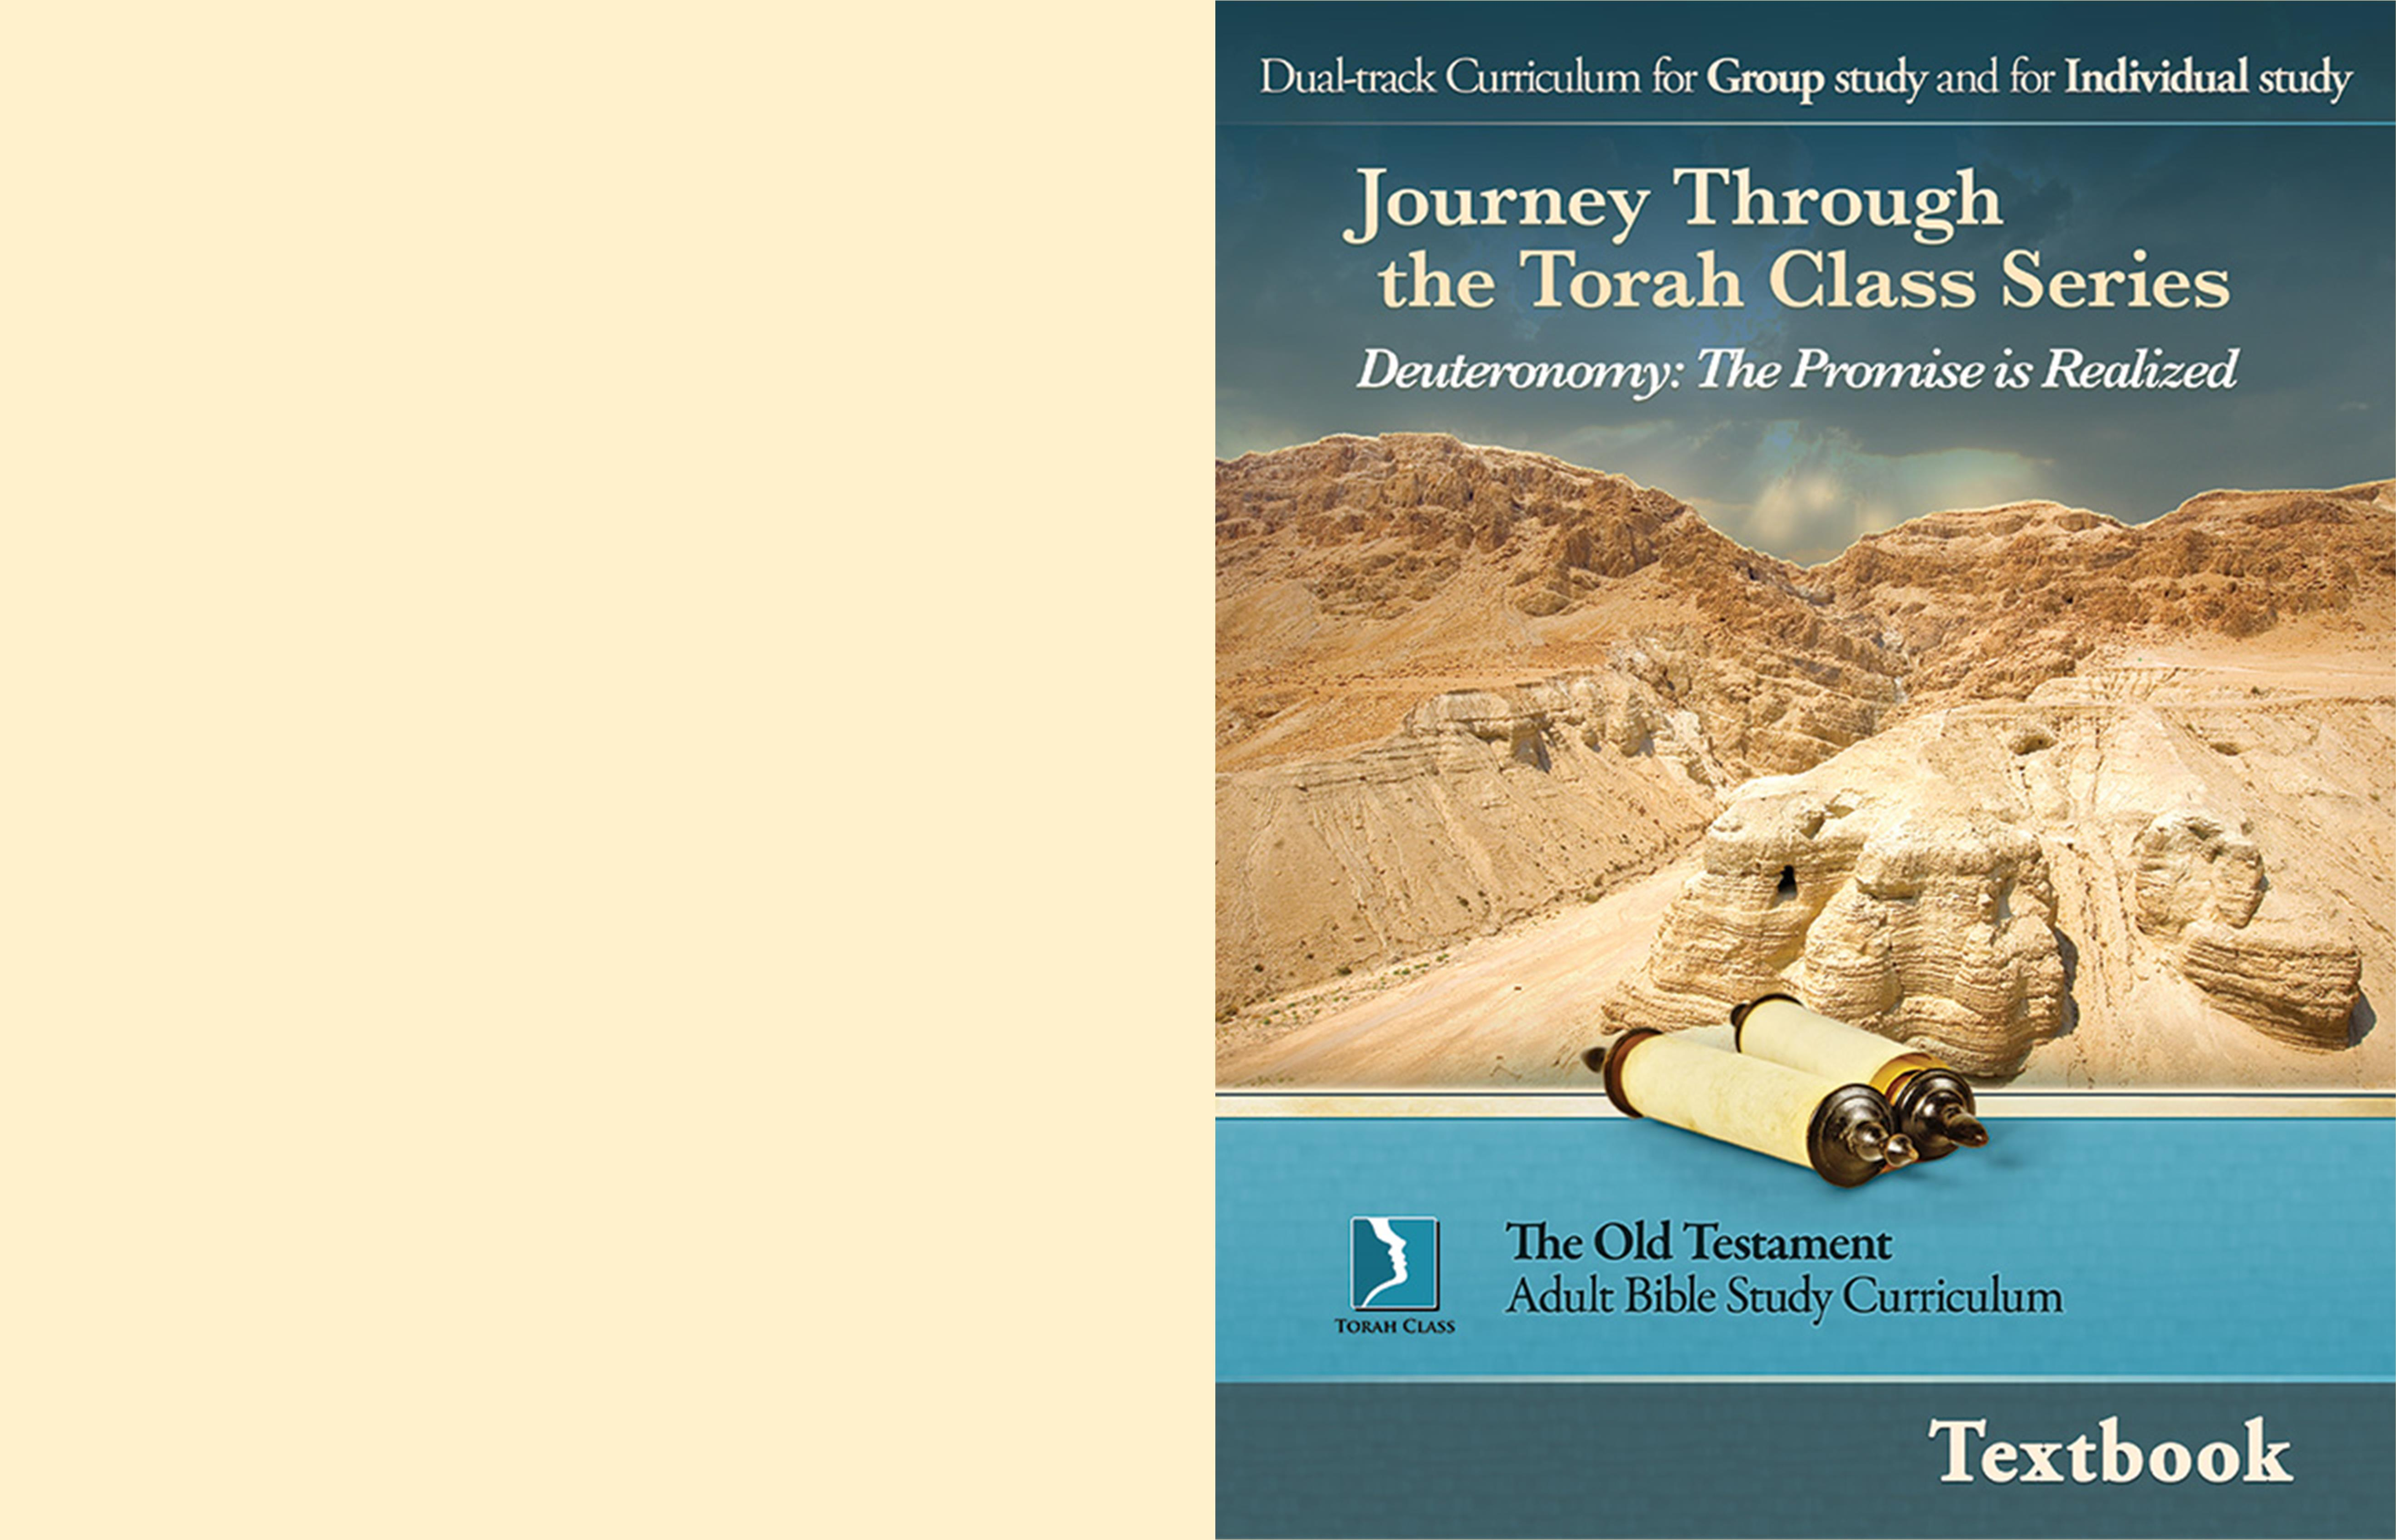 Deuteronomy: The Promise is Realized, Adult Textbook cover image